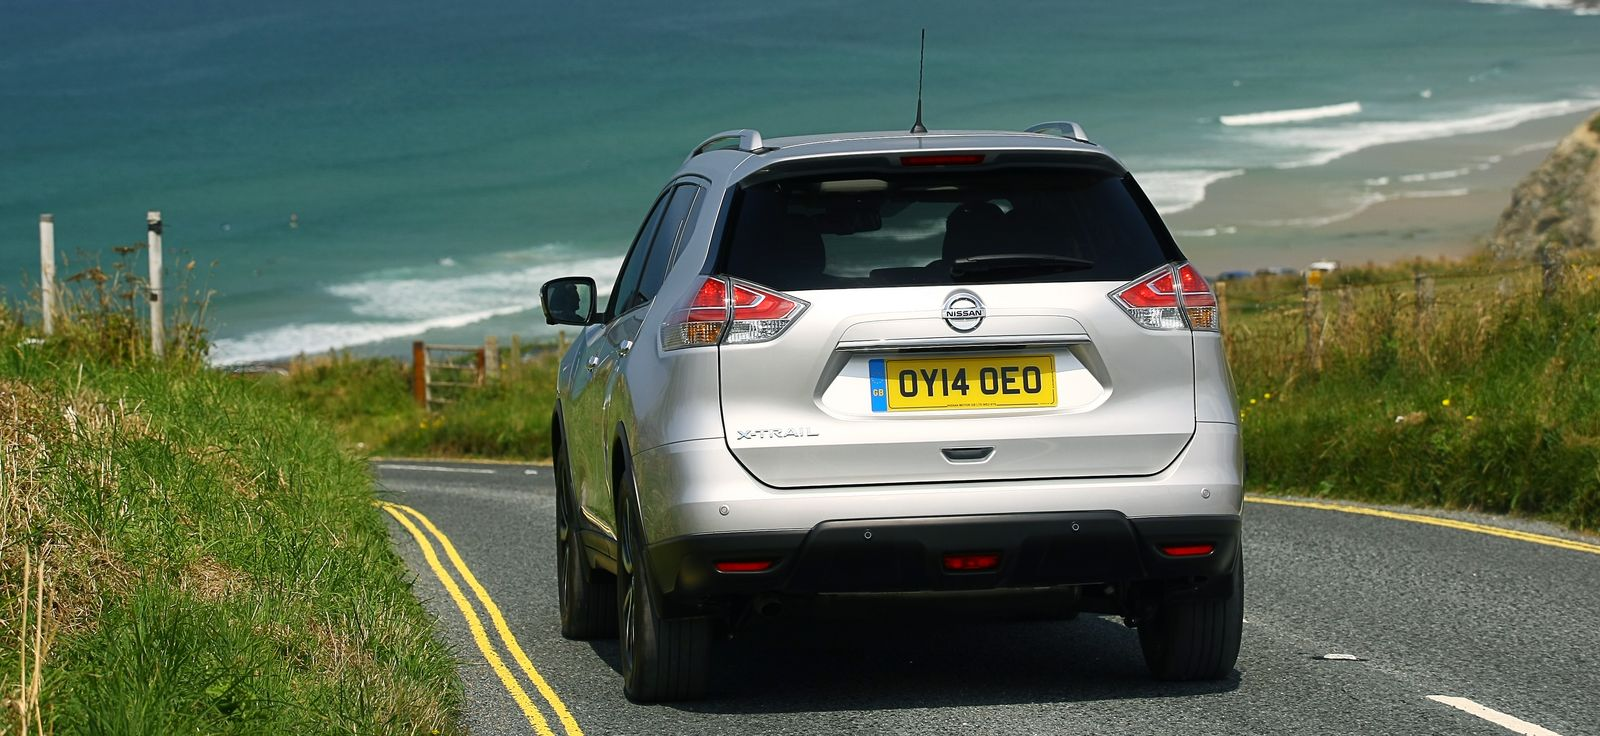 Towing capacity nissan xtrail